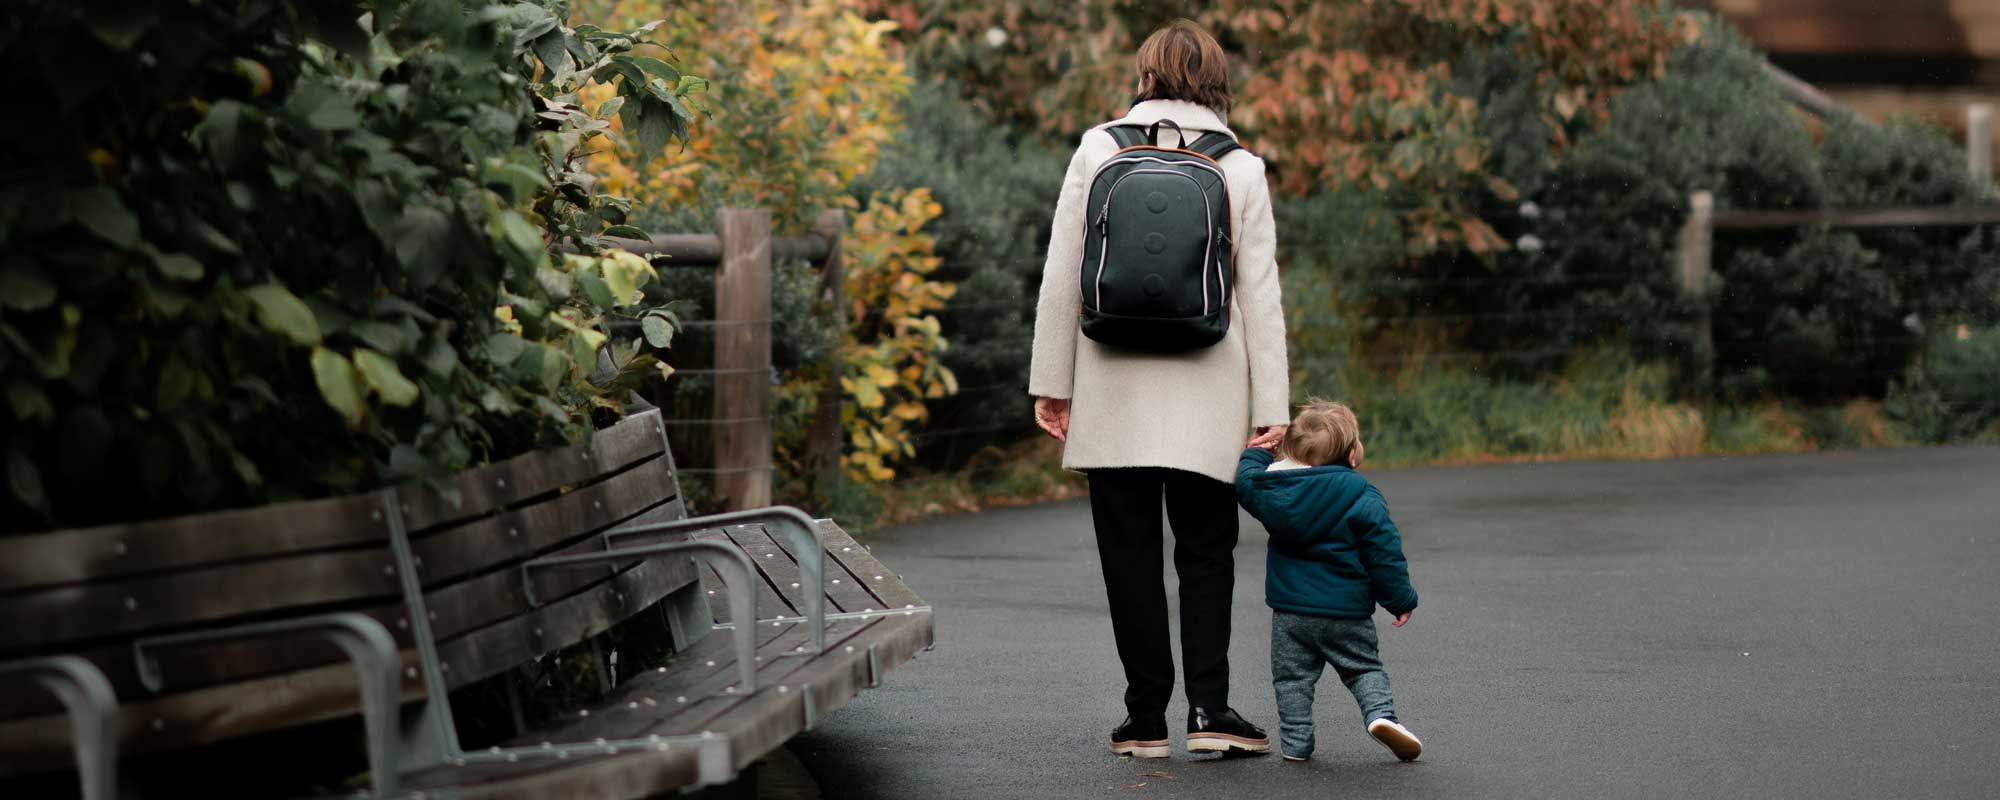 a mother walking with her toddler, she is wearing a backpack implying she is a student